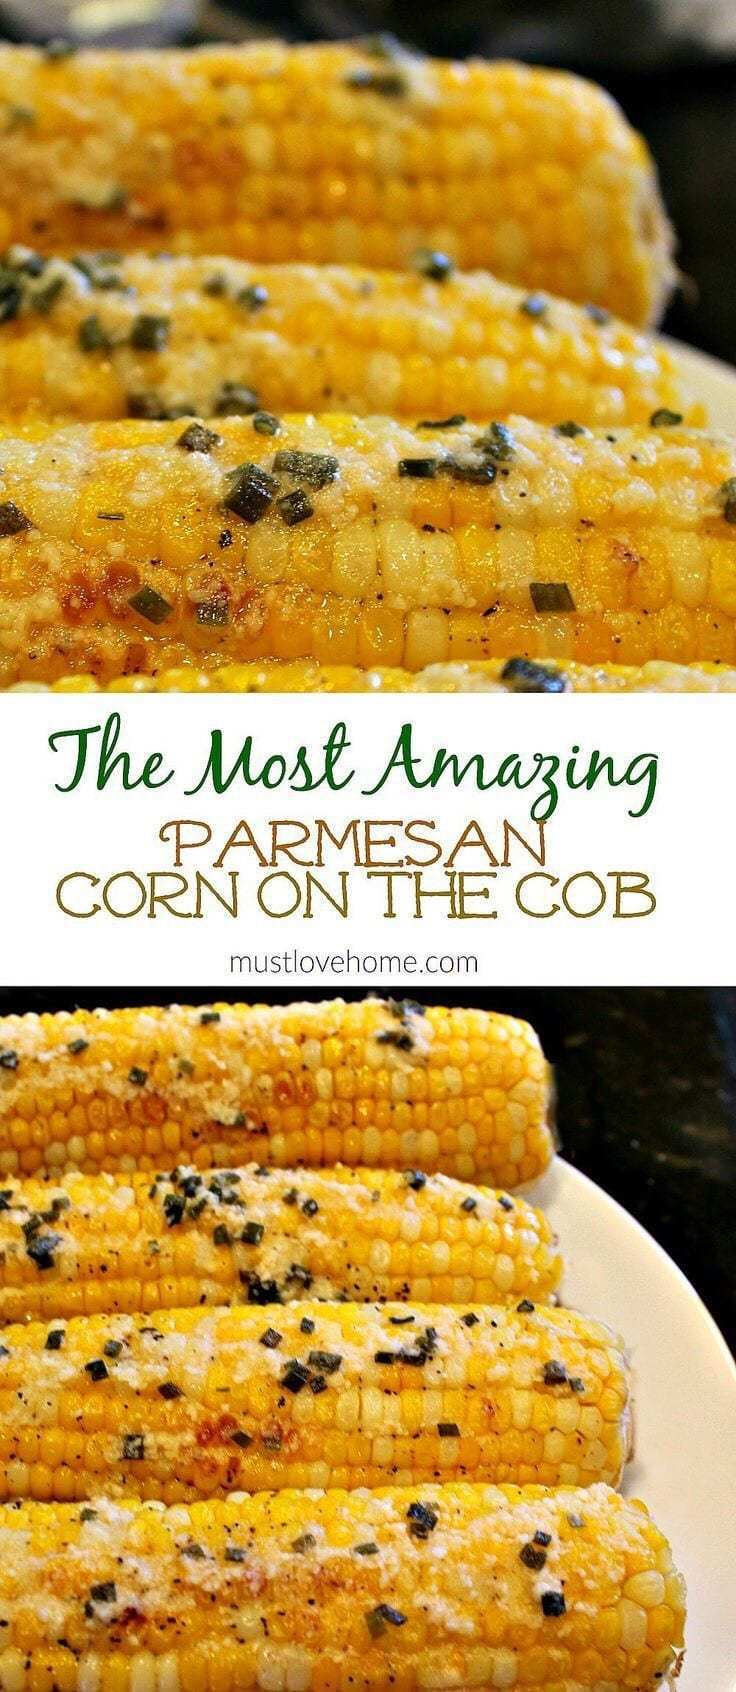 12. The Most Amazing Parmesan Corn On The Cobb